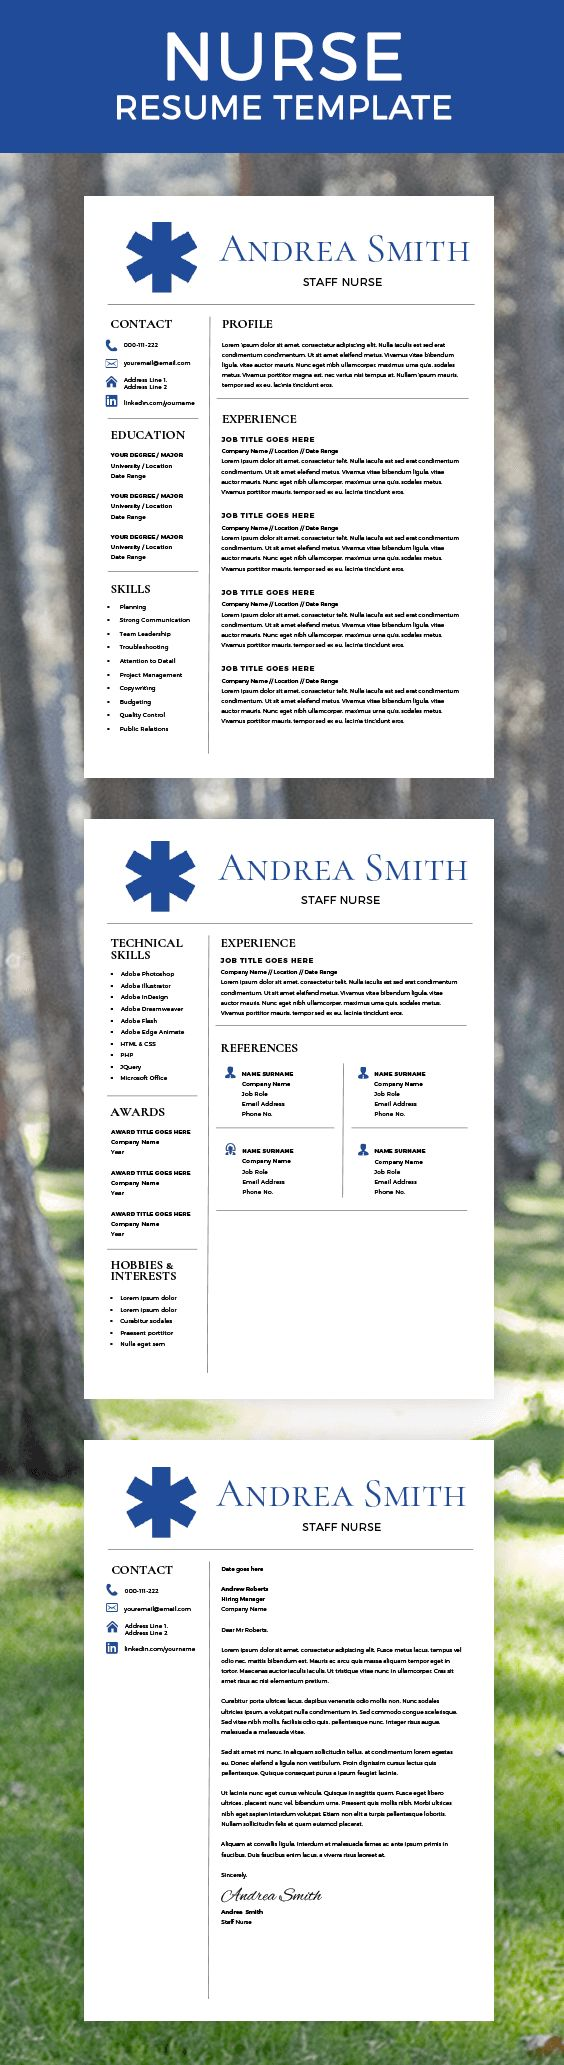 Resume Cv Templates Free Download%0A United States Map With States And Capitals Labeled